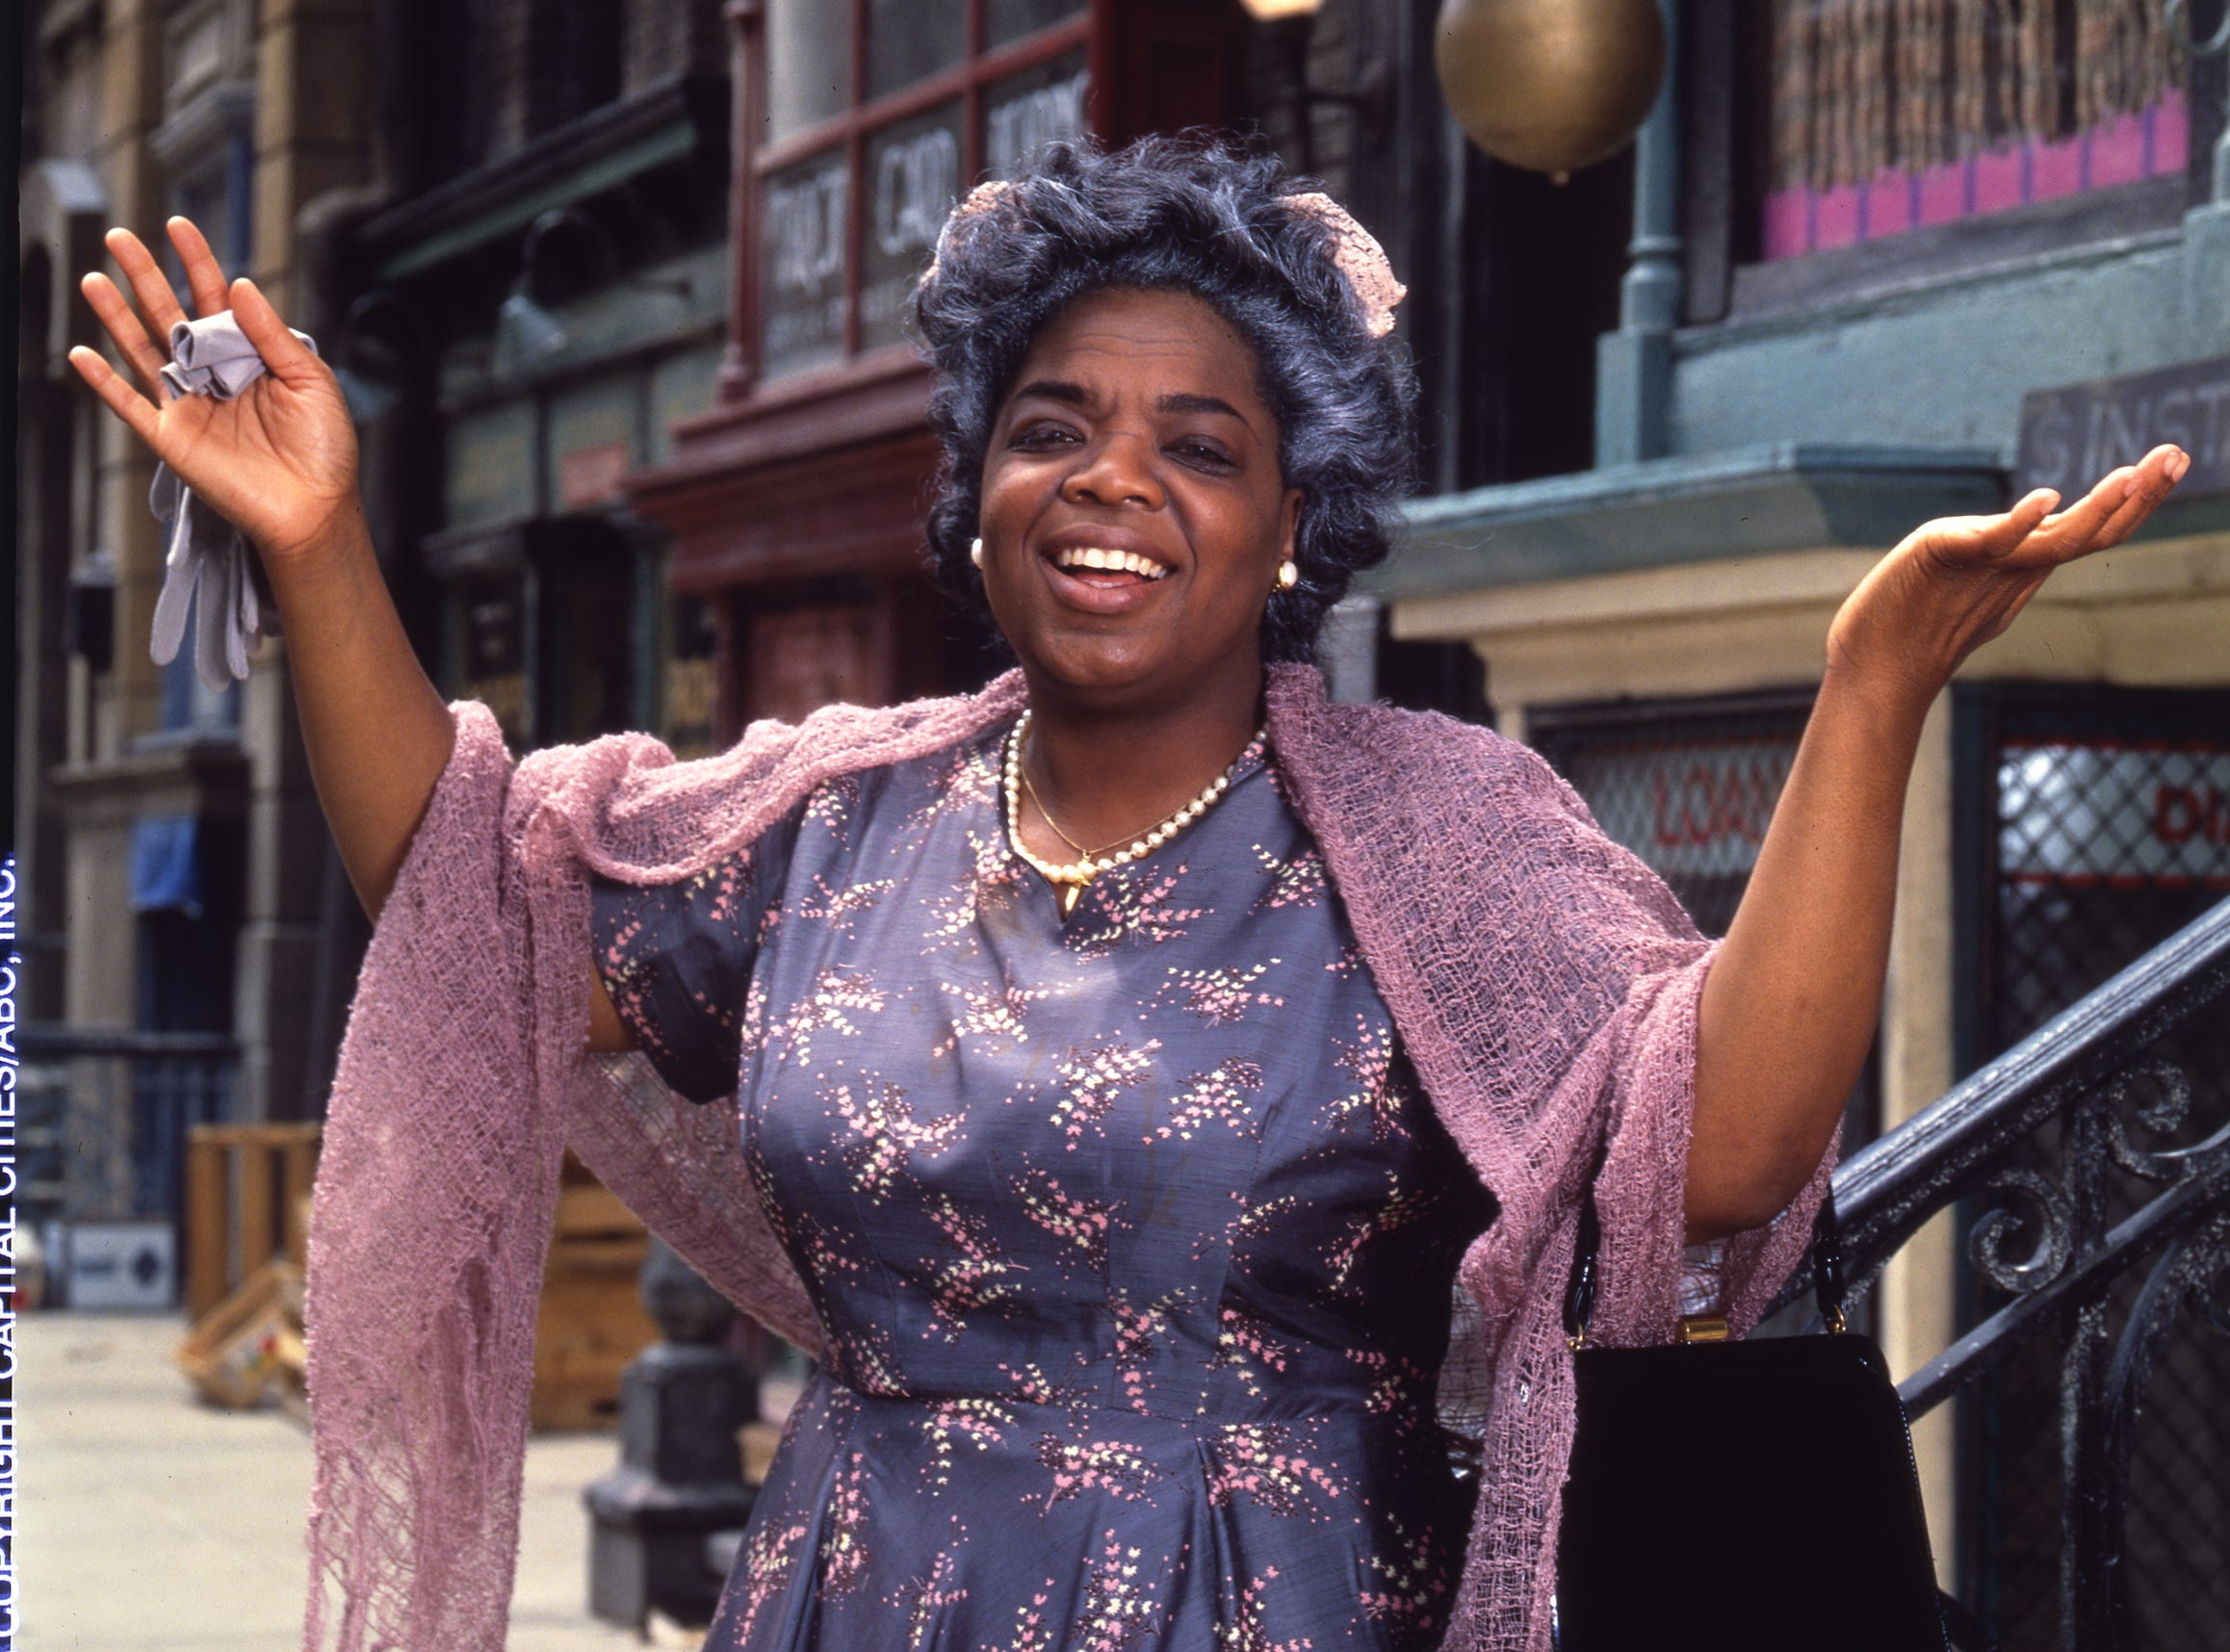 'The Women of Brewster Place' | Oprah followed up 'The Color Purple' with this TV miniseries in 1989. Based on the critically acclaimed eponymous novel by Gloria Naylor, Oprah produced and starred as Mattie, an African-American woman living in a rundown project. The series was nominated for two Emmys and spawned a short-lived spin-off called 'Brewster Place.'